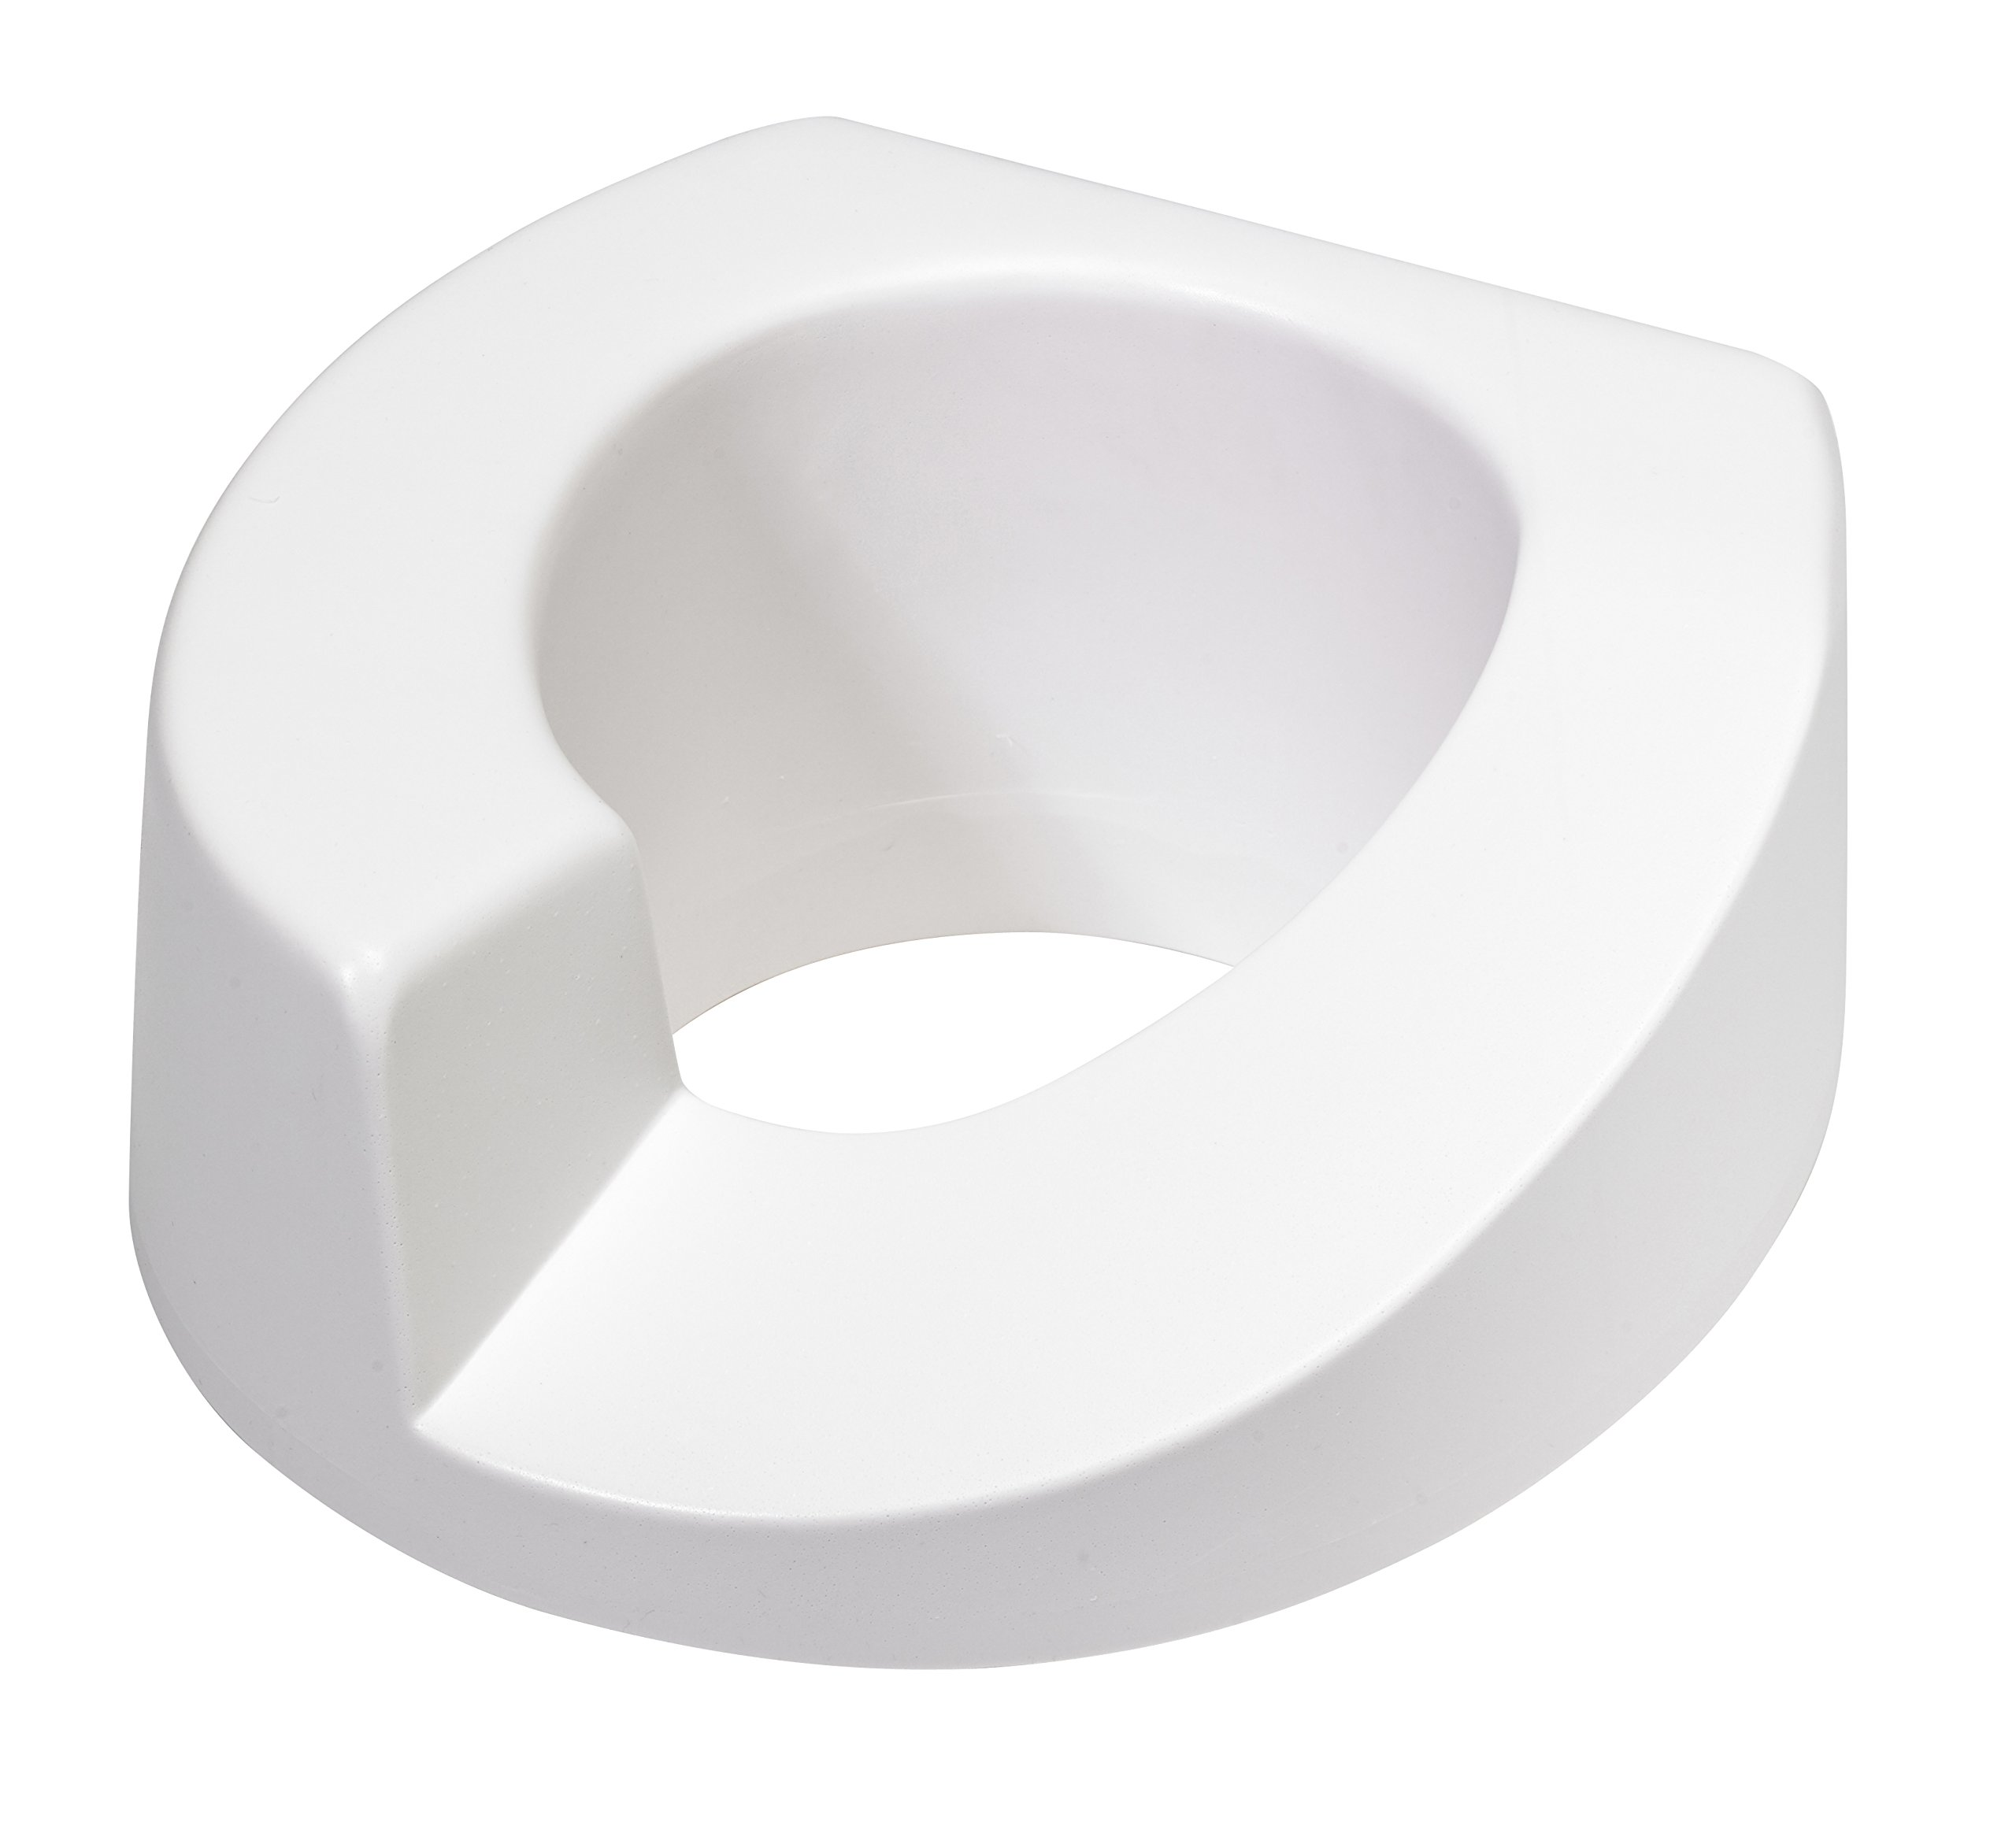 Ableware 725901000 Arthro, Tall-ette, Left Standard Elevated Toilet Seat by Maddak Inc.